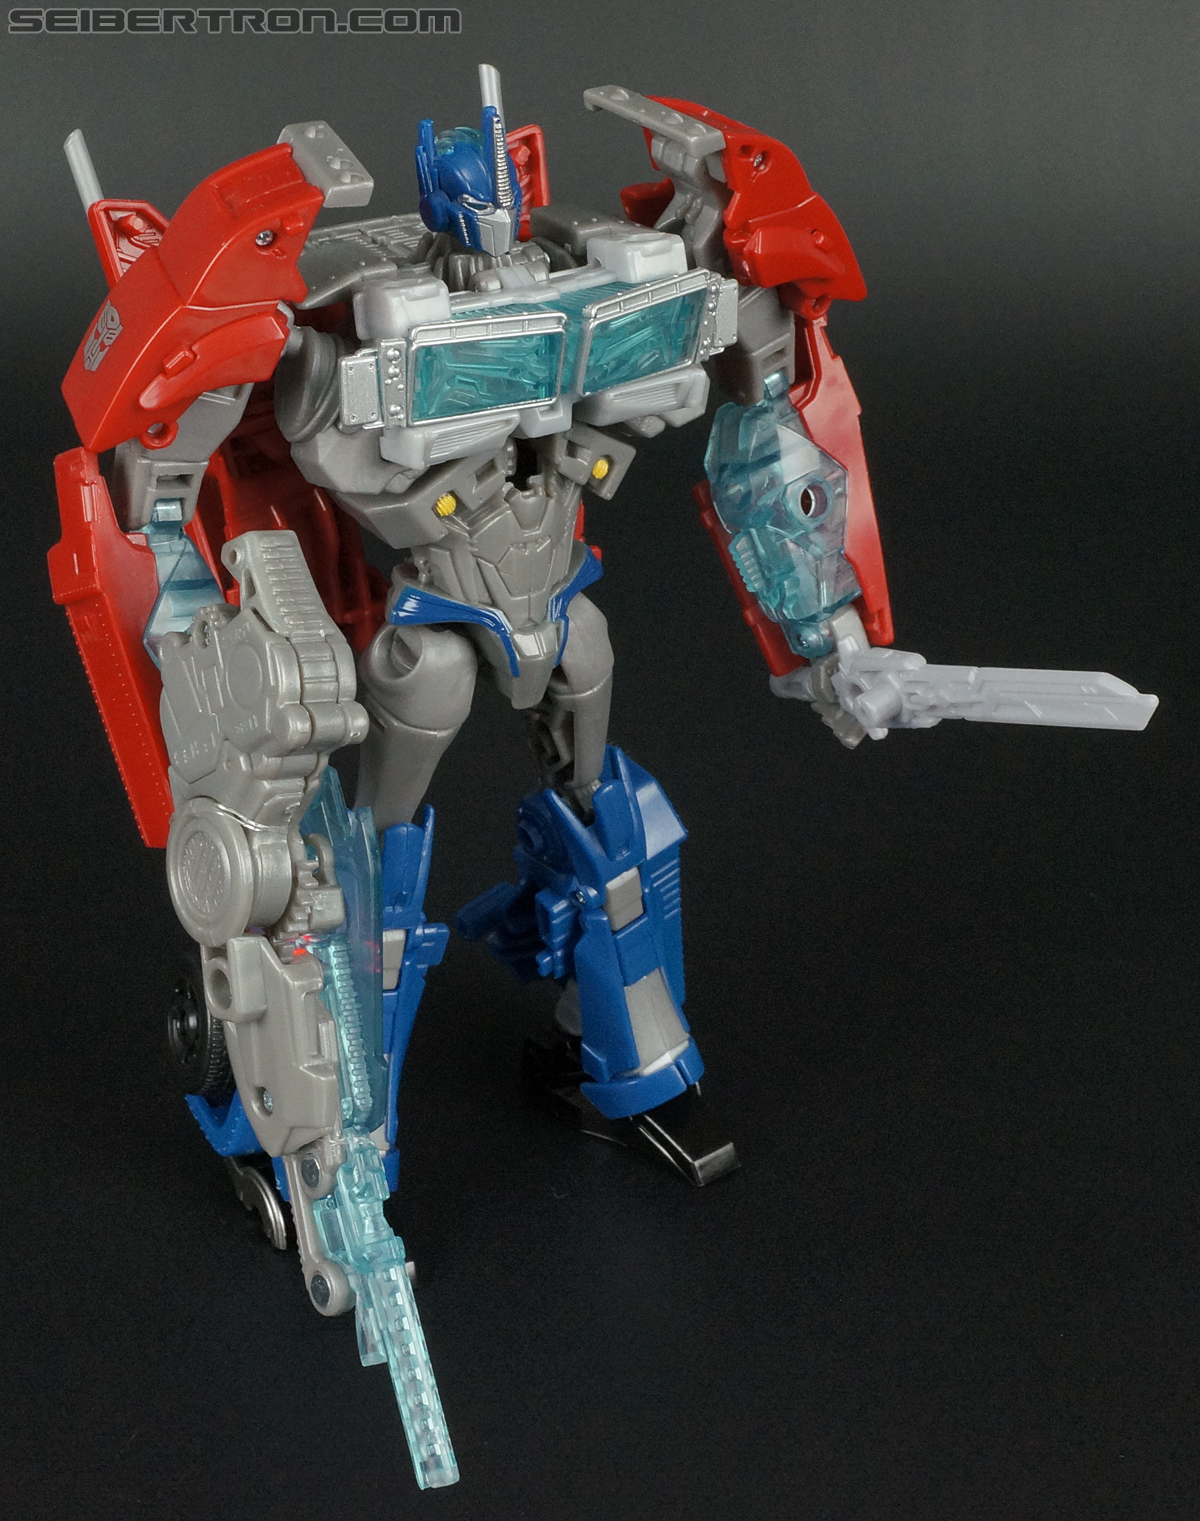 Transformers Prime: Robots In Disguise Optimus Prime (Image #93 of 176)